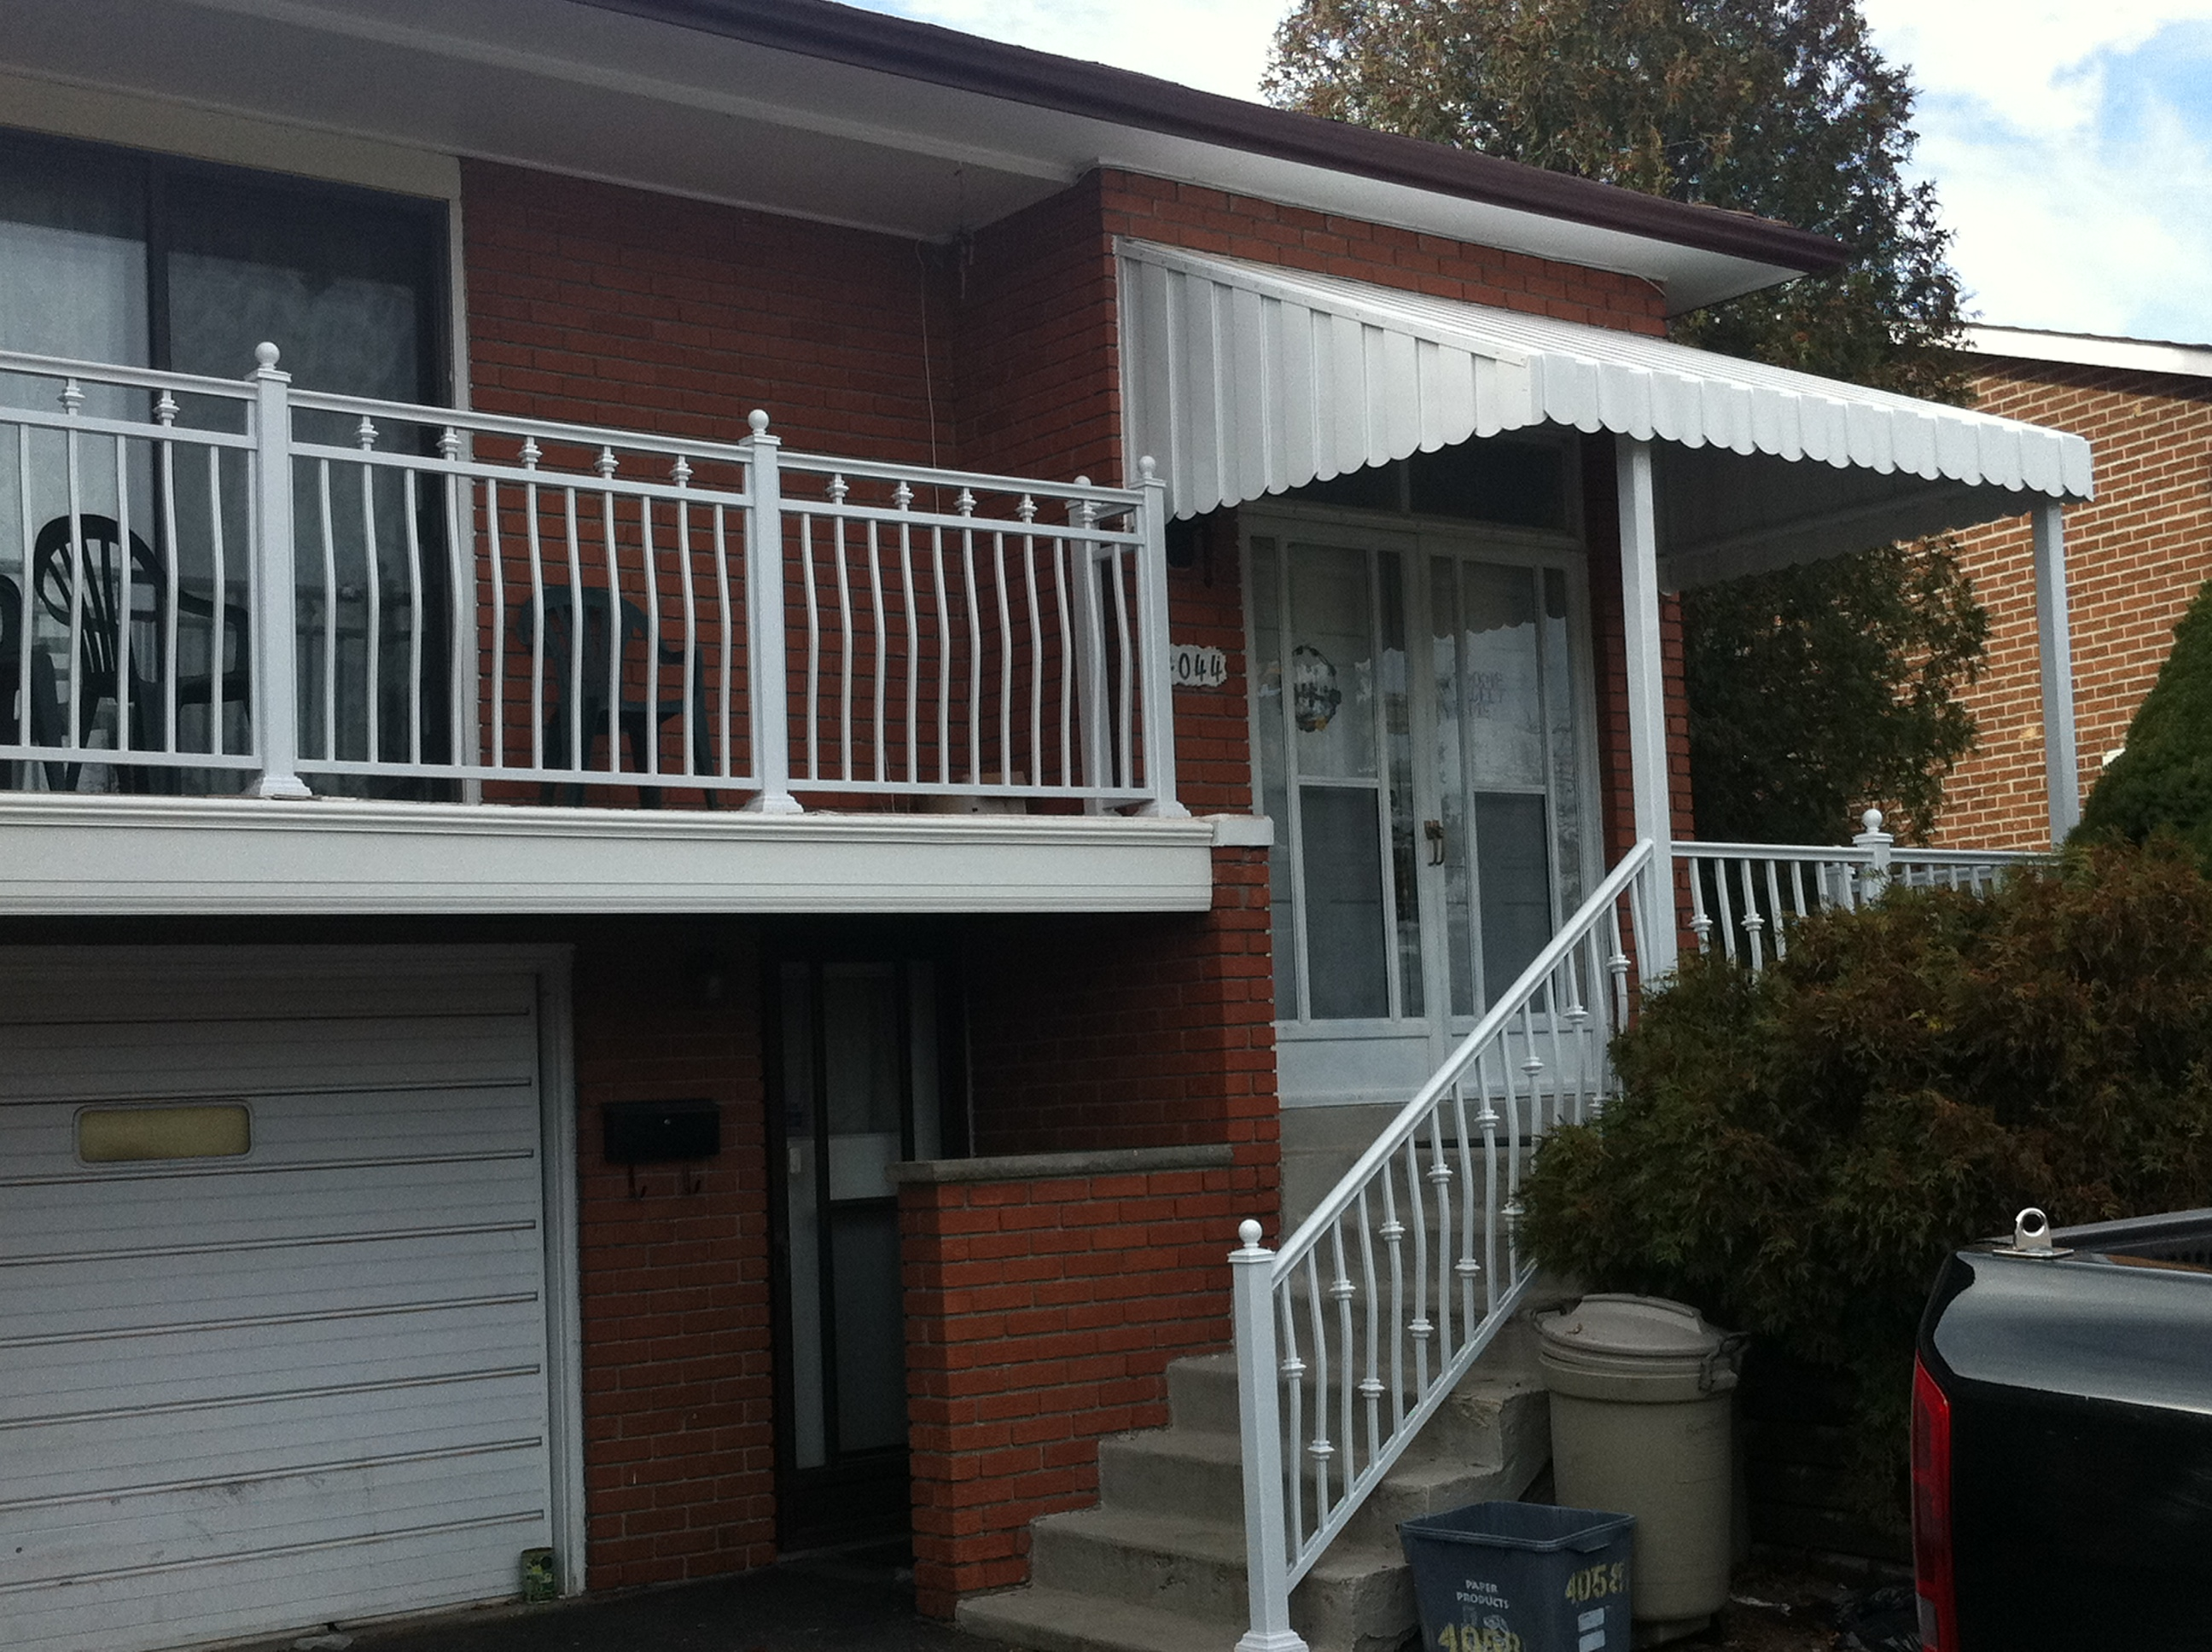 Pictures of aluminum railings,fence,awnings, doors